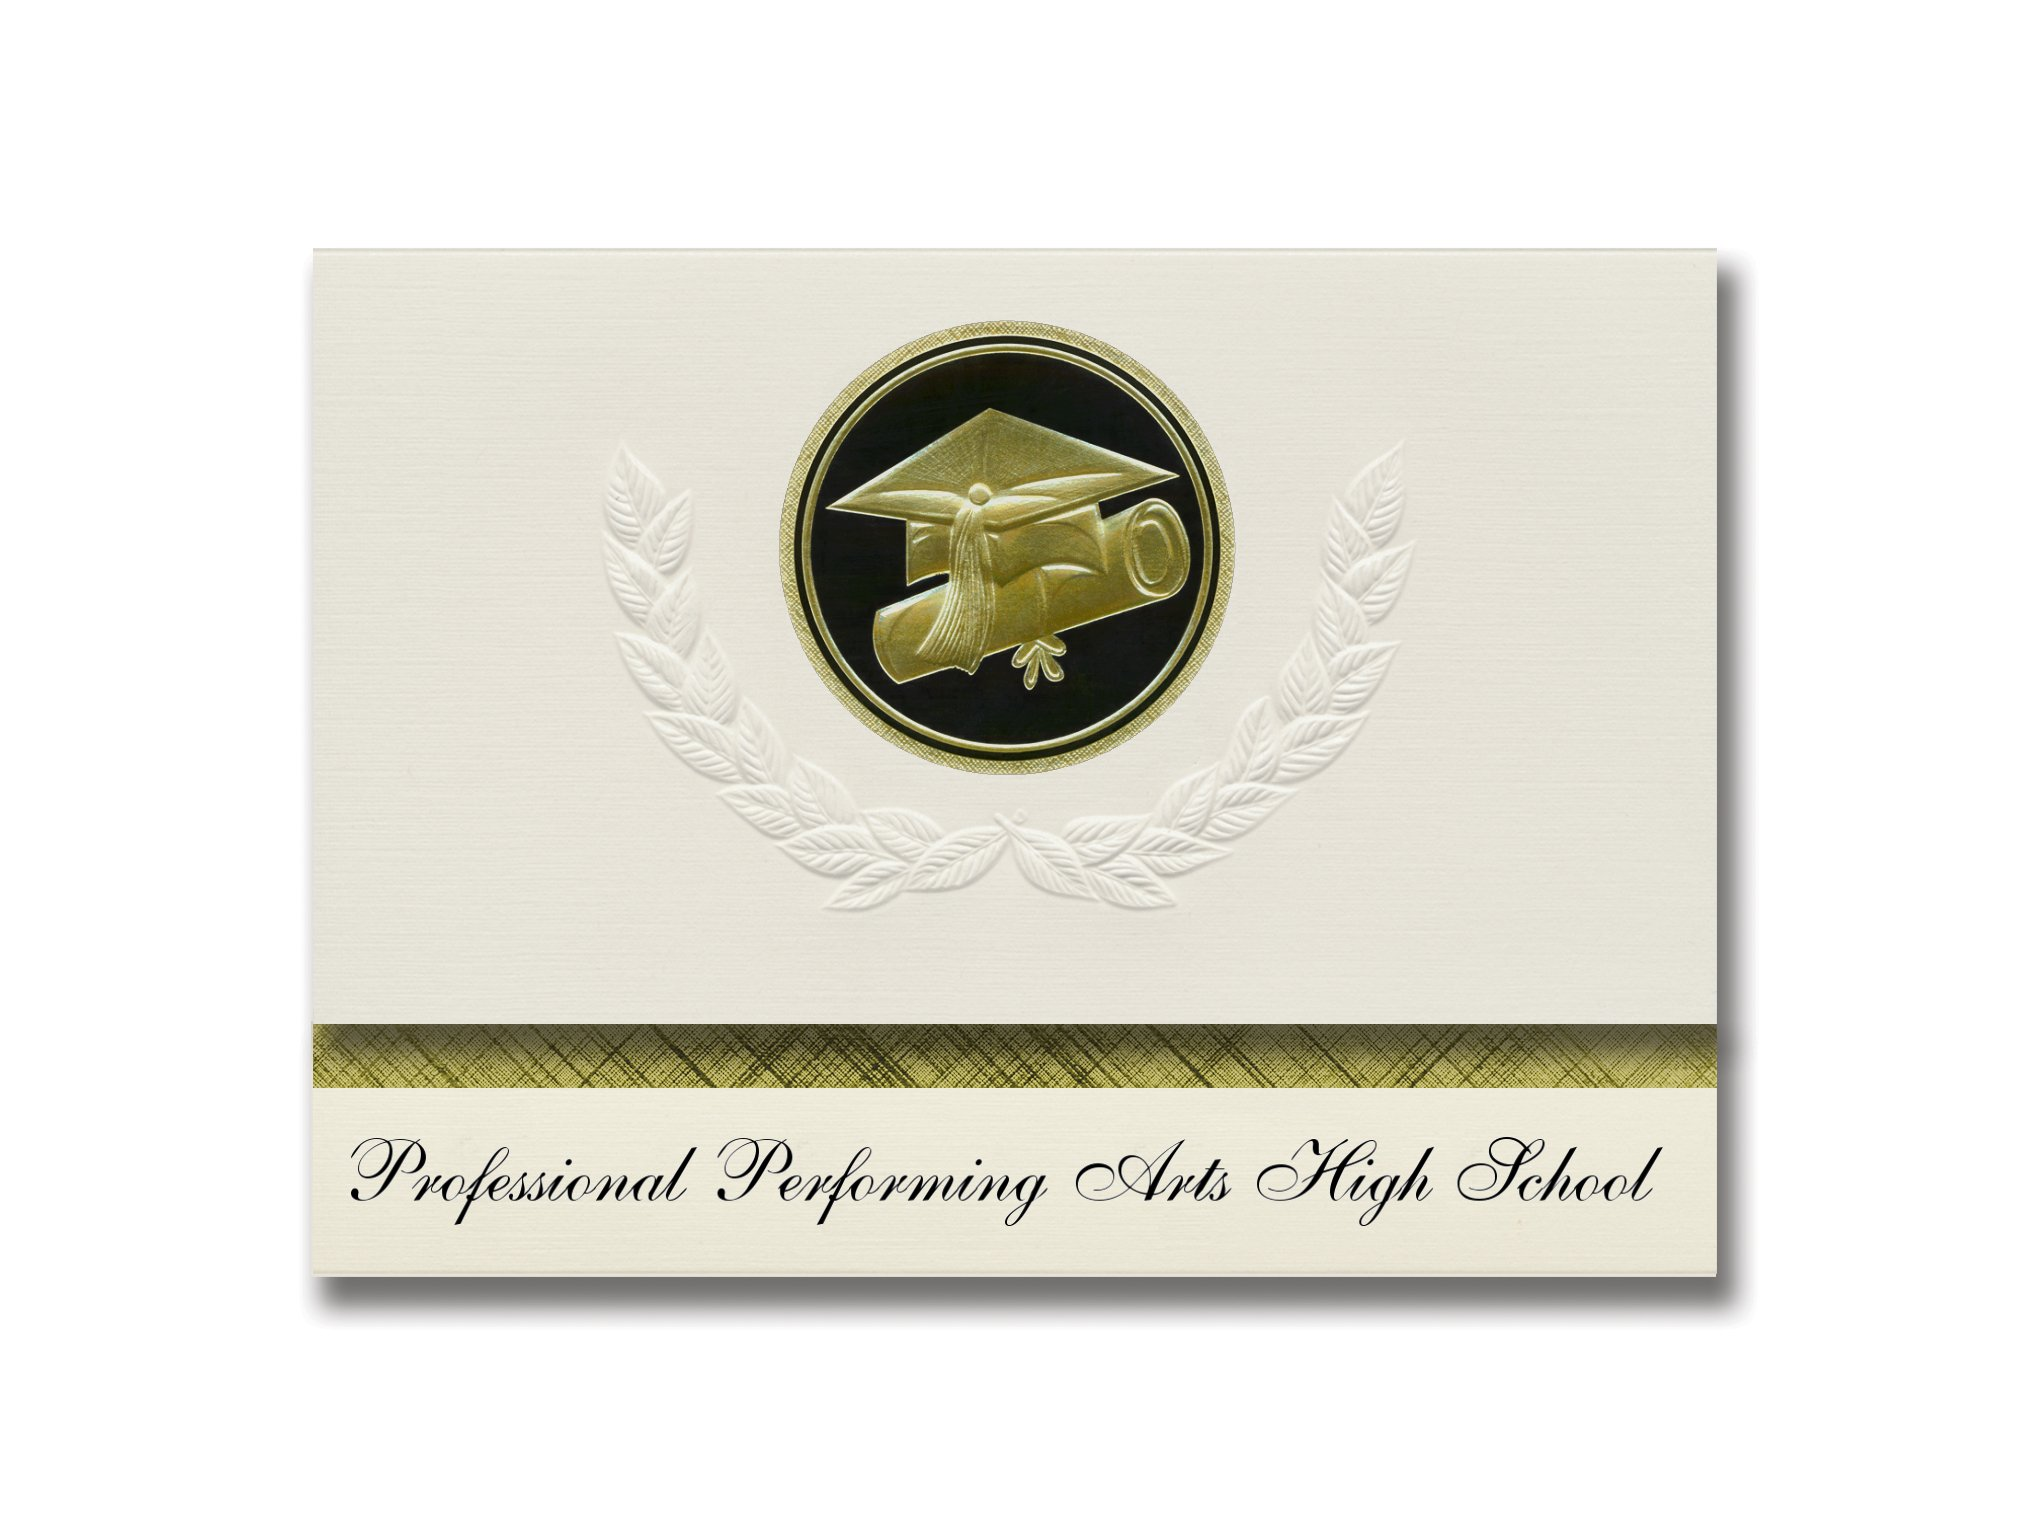 Signature Announcements Elite Performing Arts High School (New York, NY) Graduation Announcements, Presidential Basic Pack 25 Cap & Diploma Seal. Black & Gold.